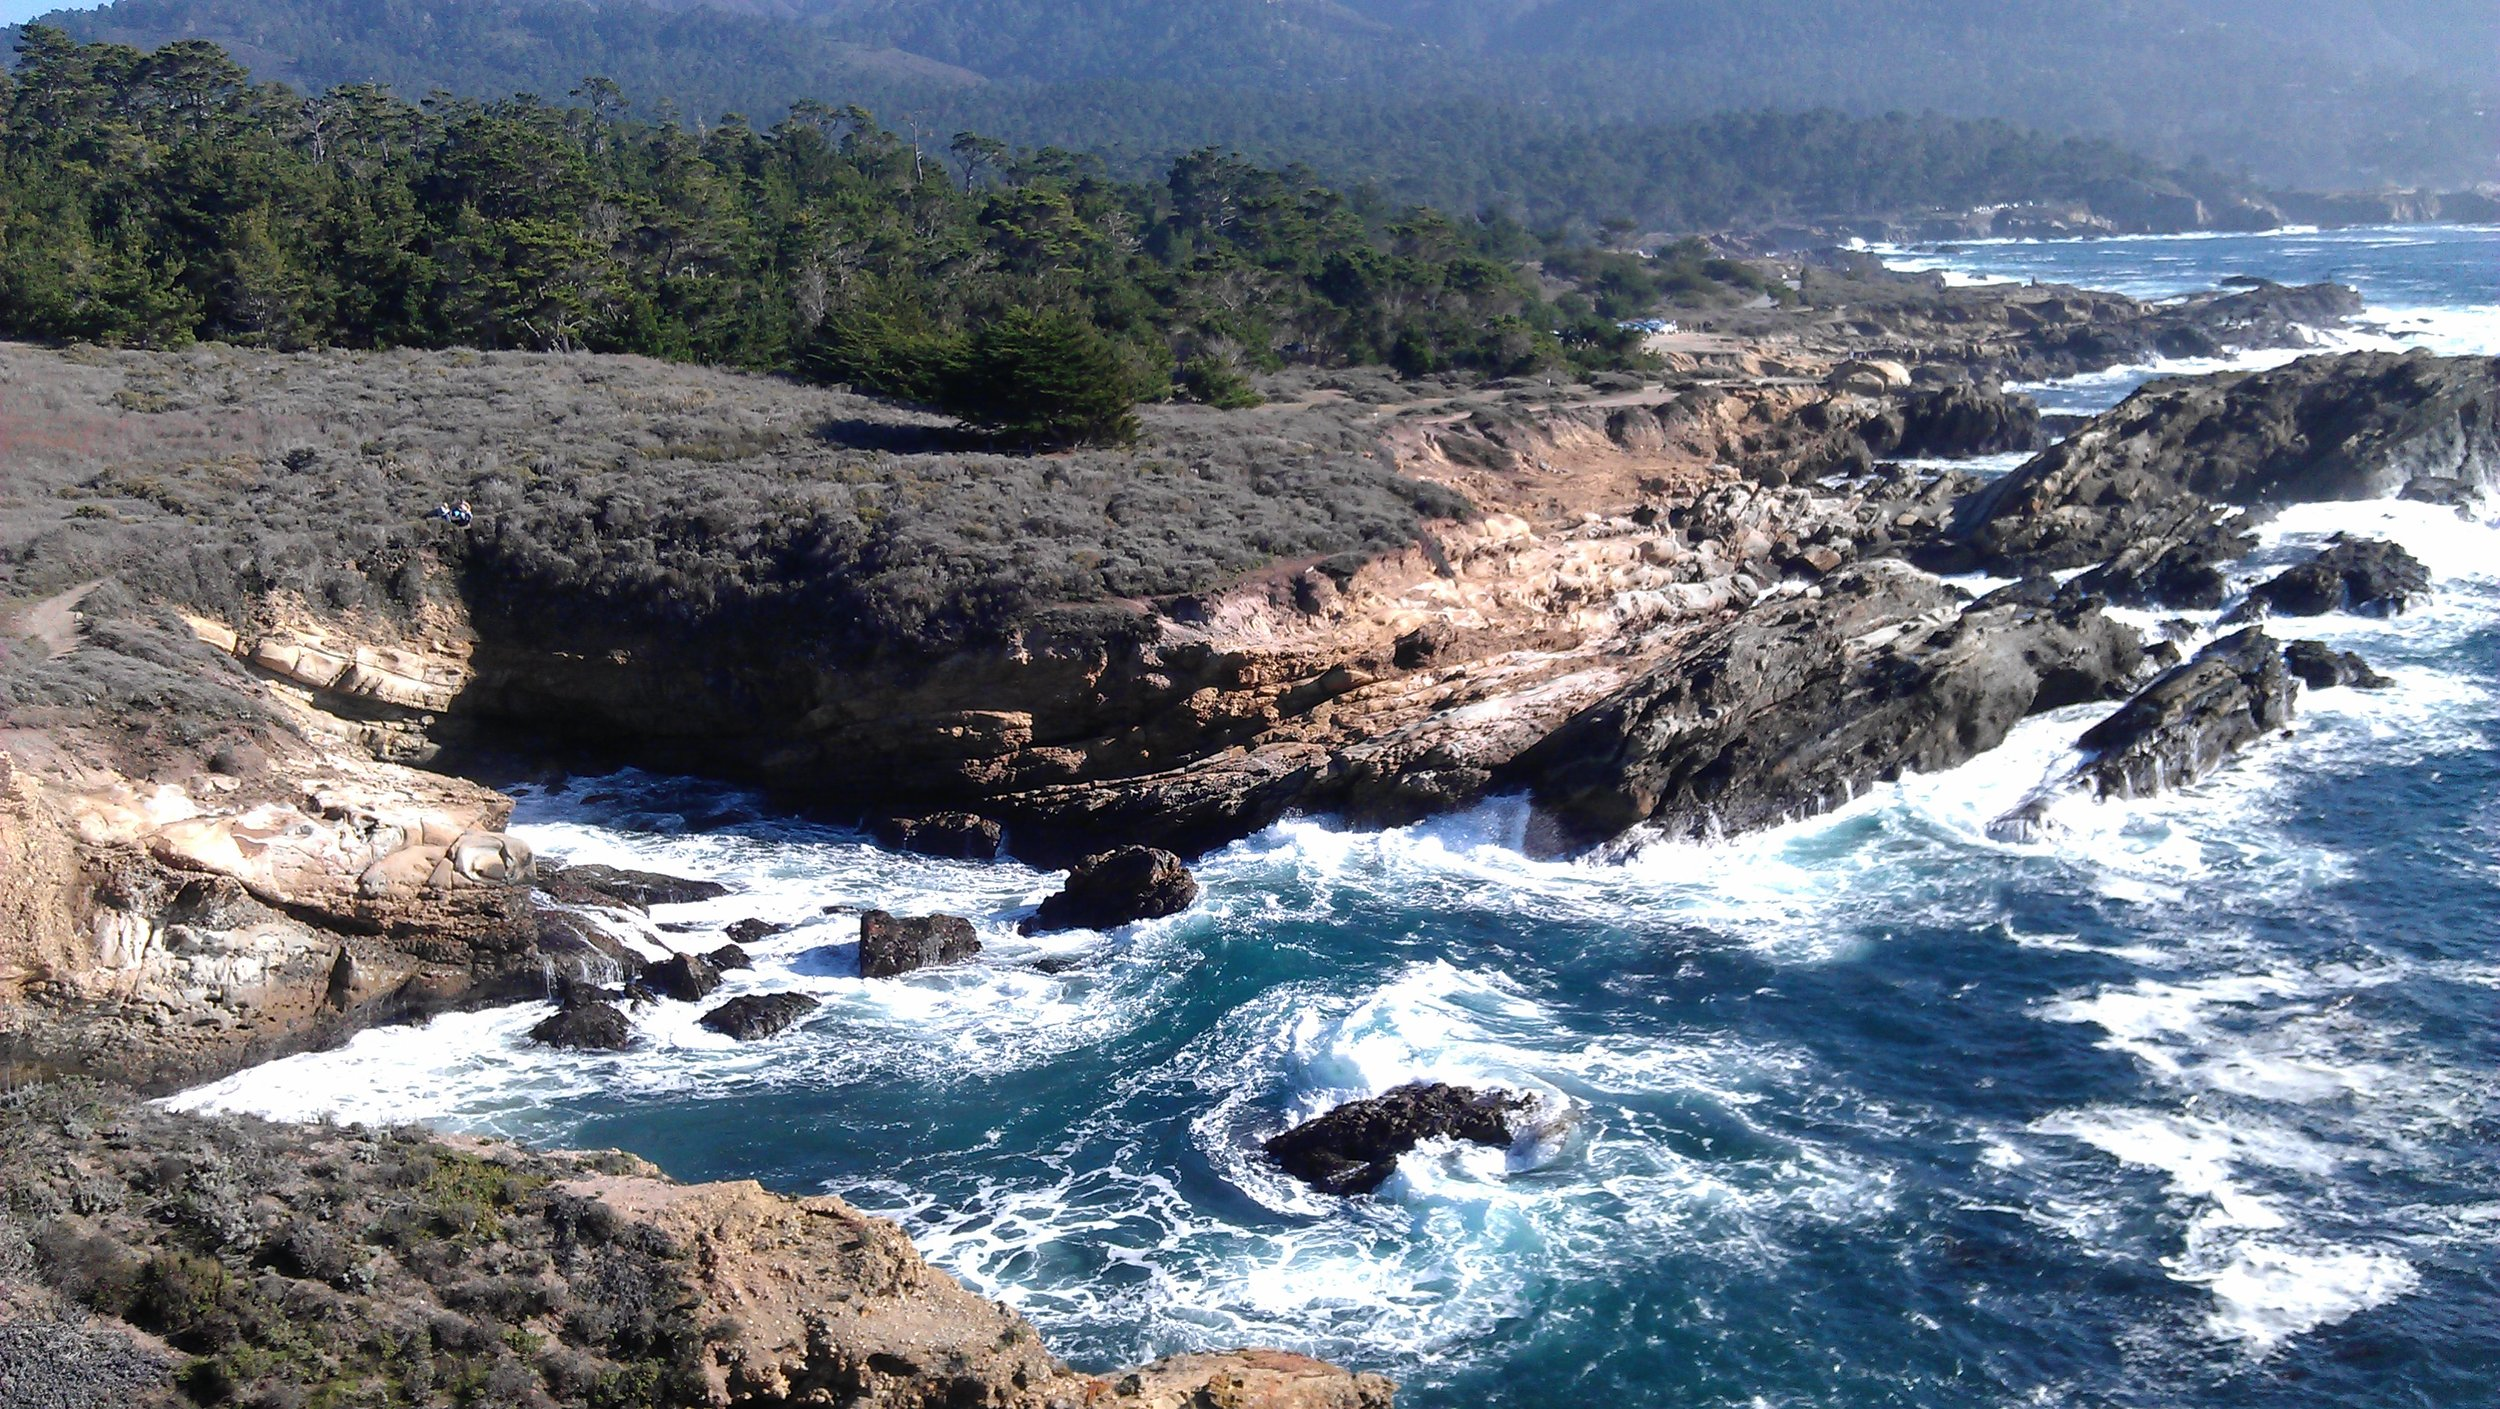 Point Lobos is a great place to spend an afternoon nature hiking